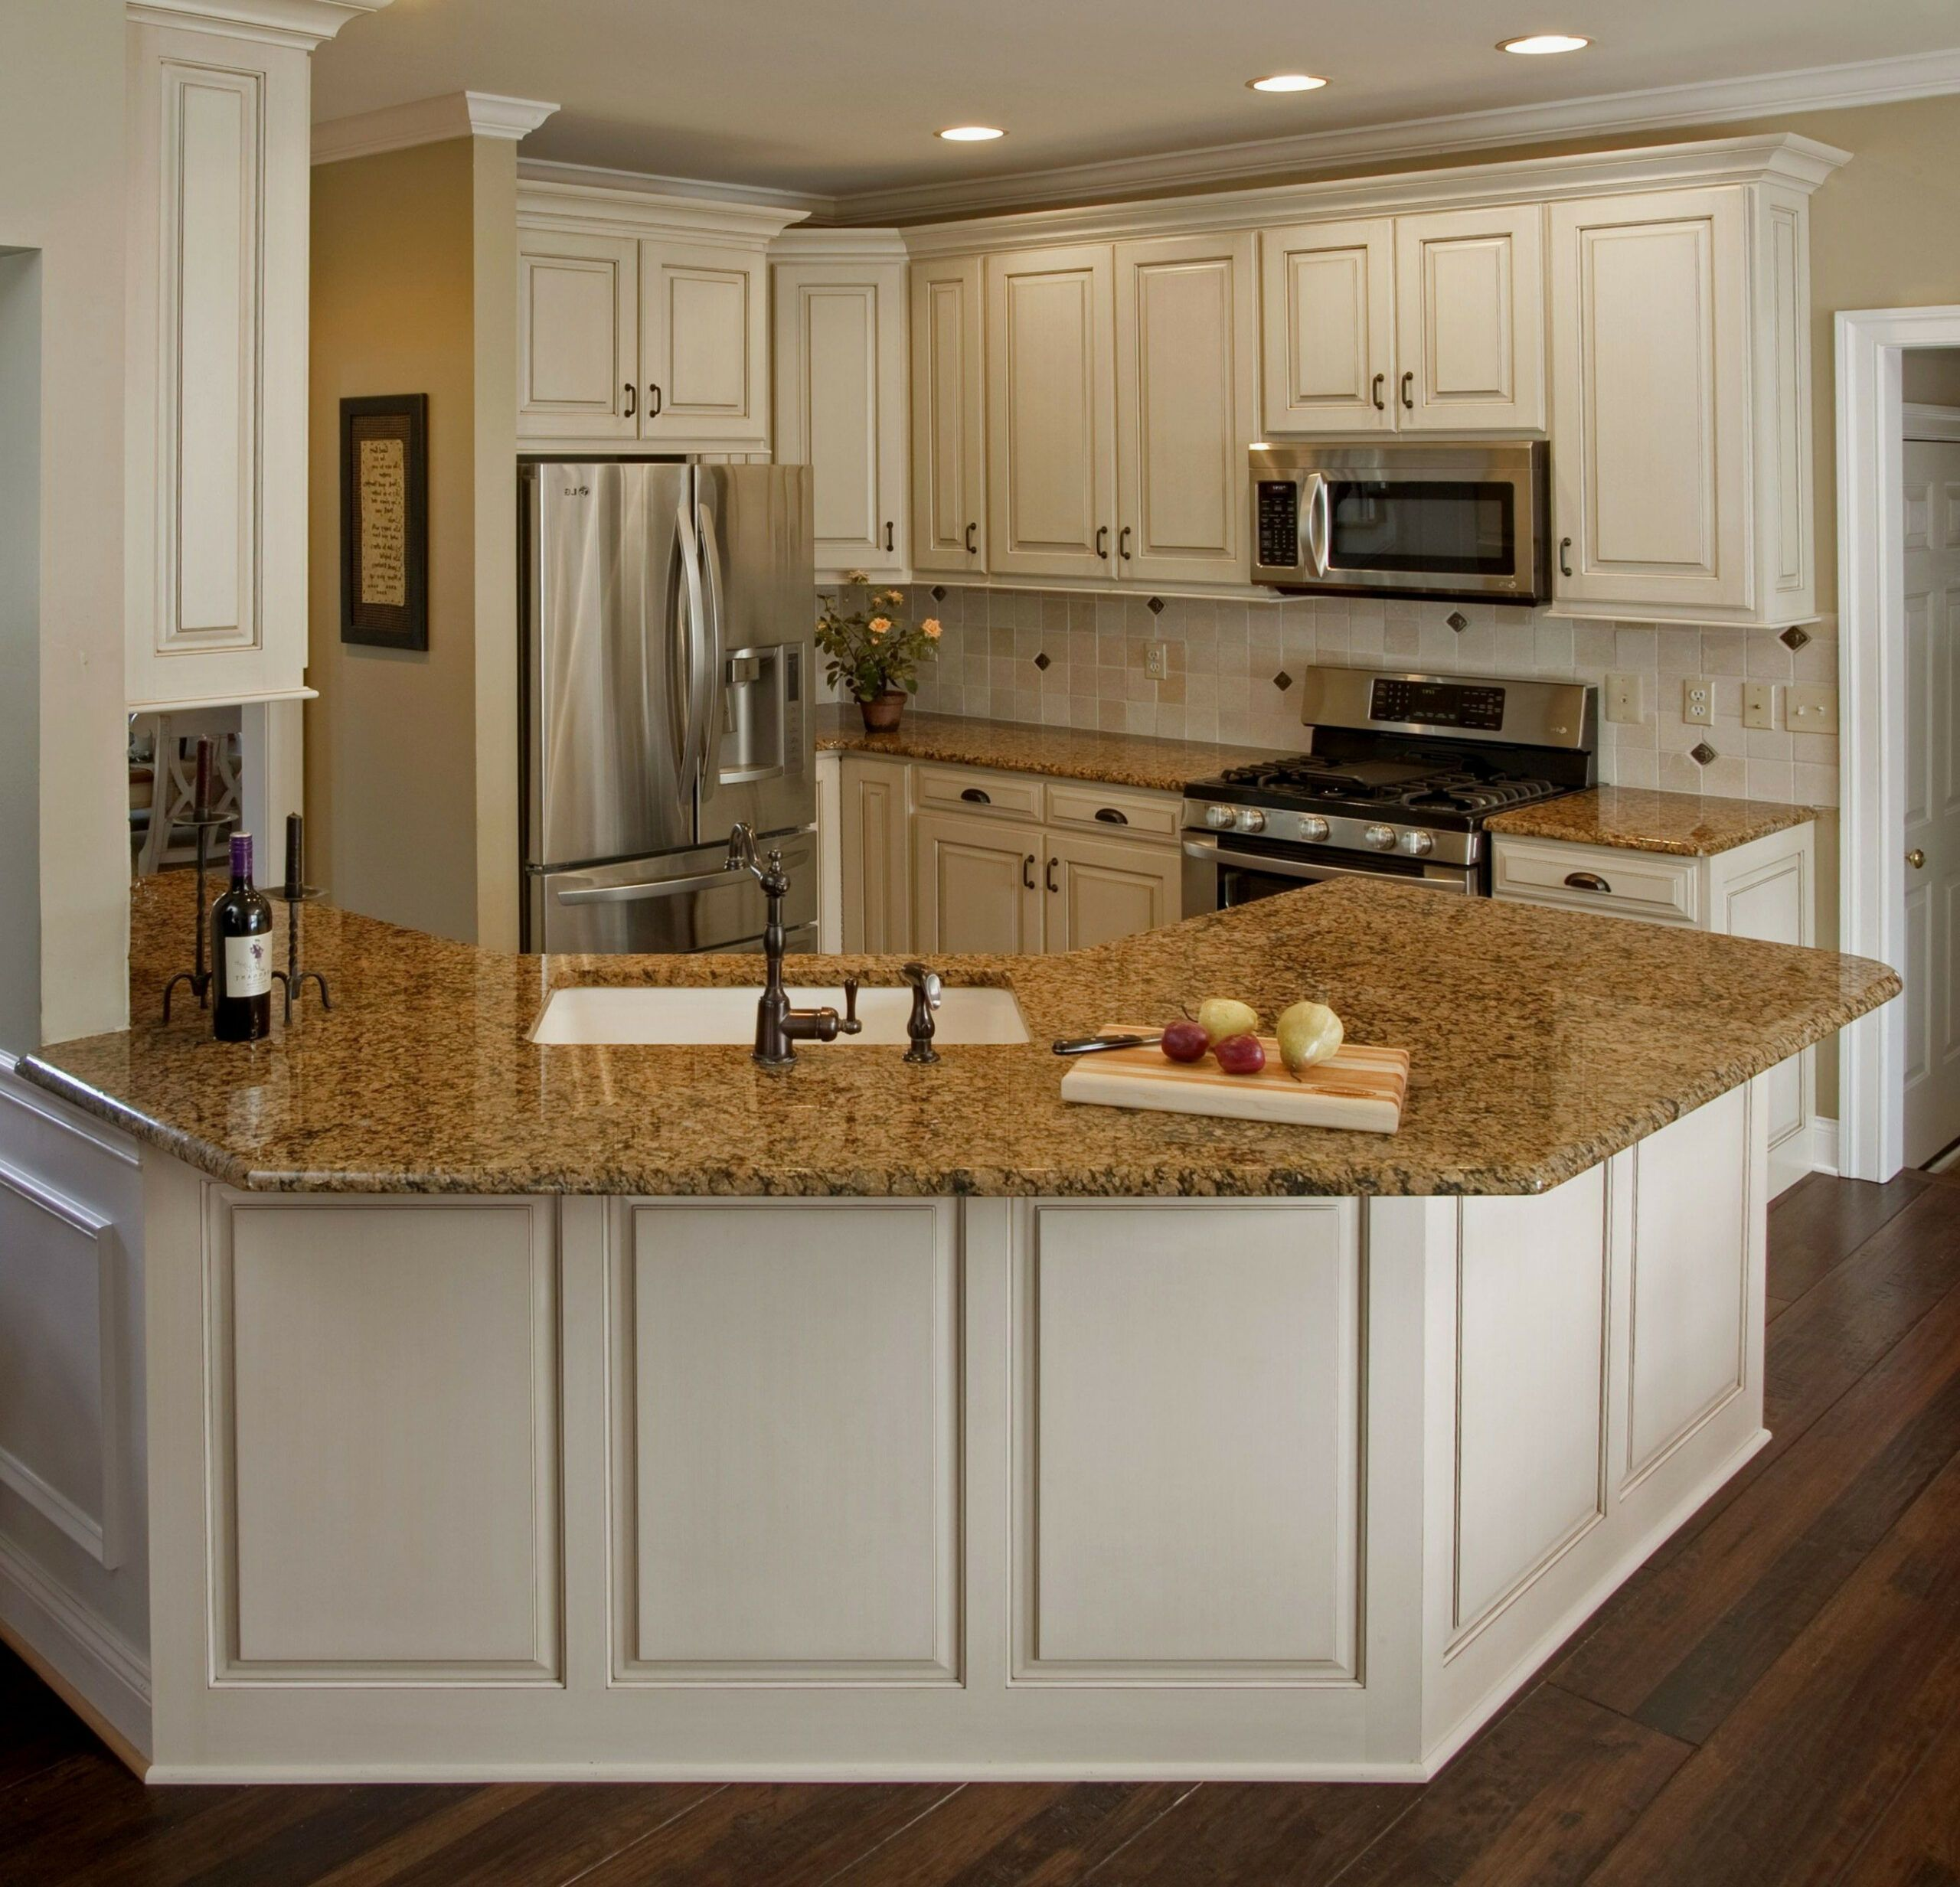 11 The Best How Much Does It Cost For New Kitchen Cabinets ...